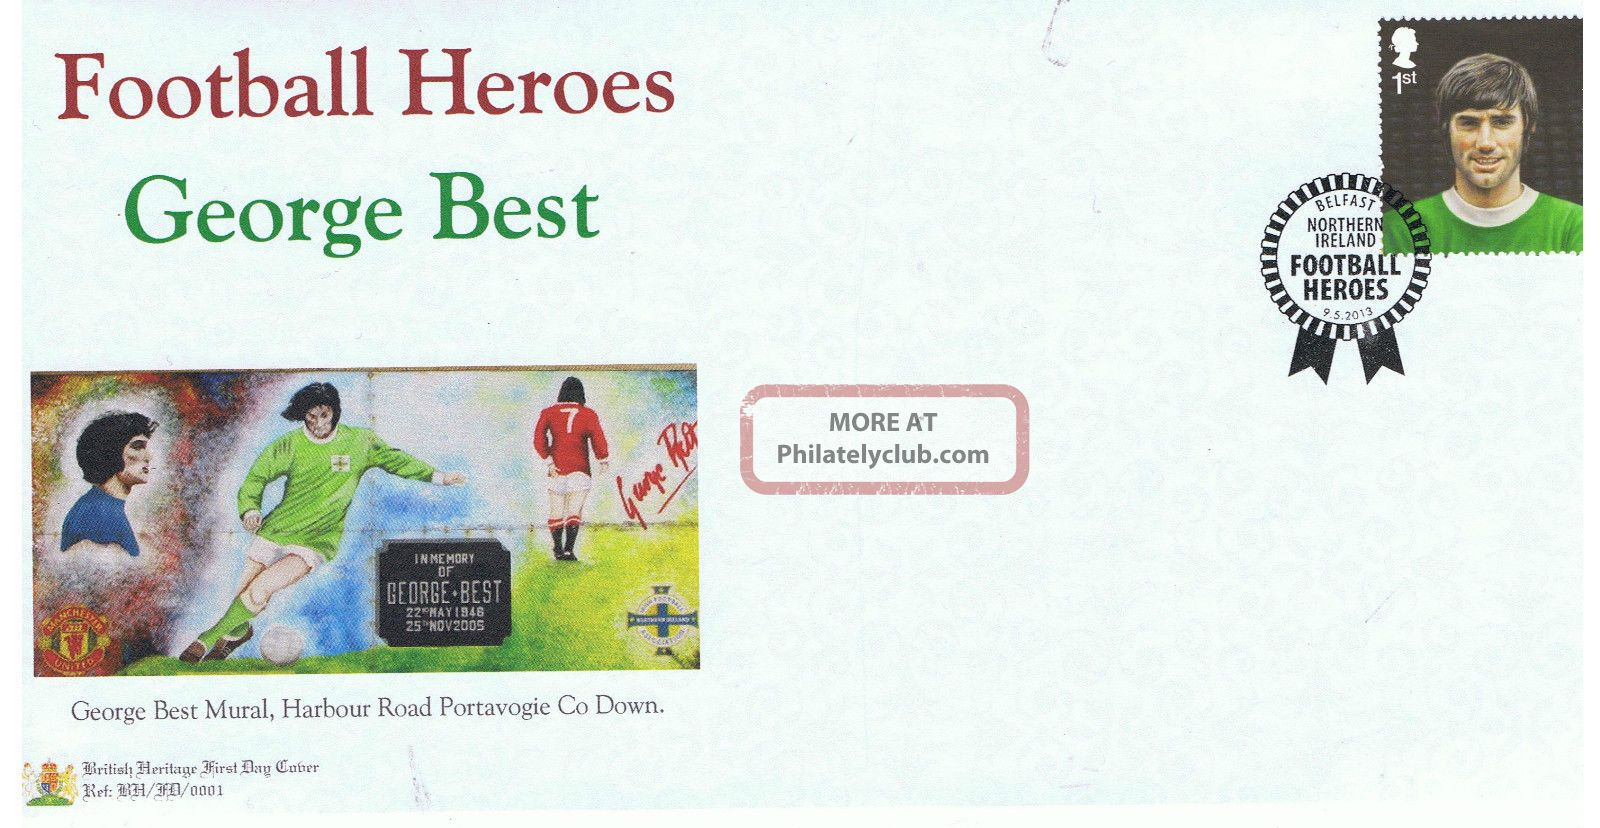 George Best - Football Hero Limited Edition (100 Only) British Heritage Cover Topical Stamps photo